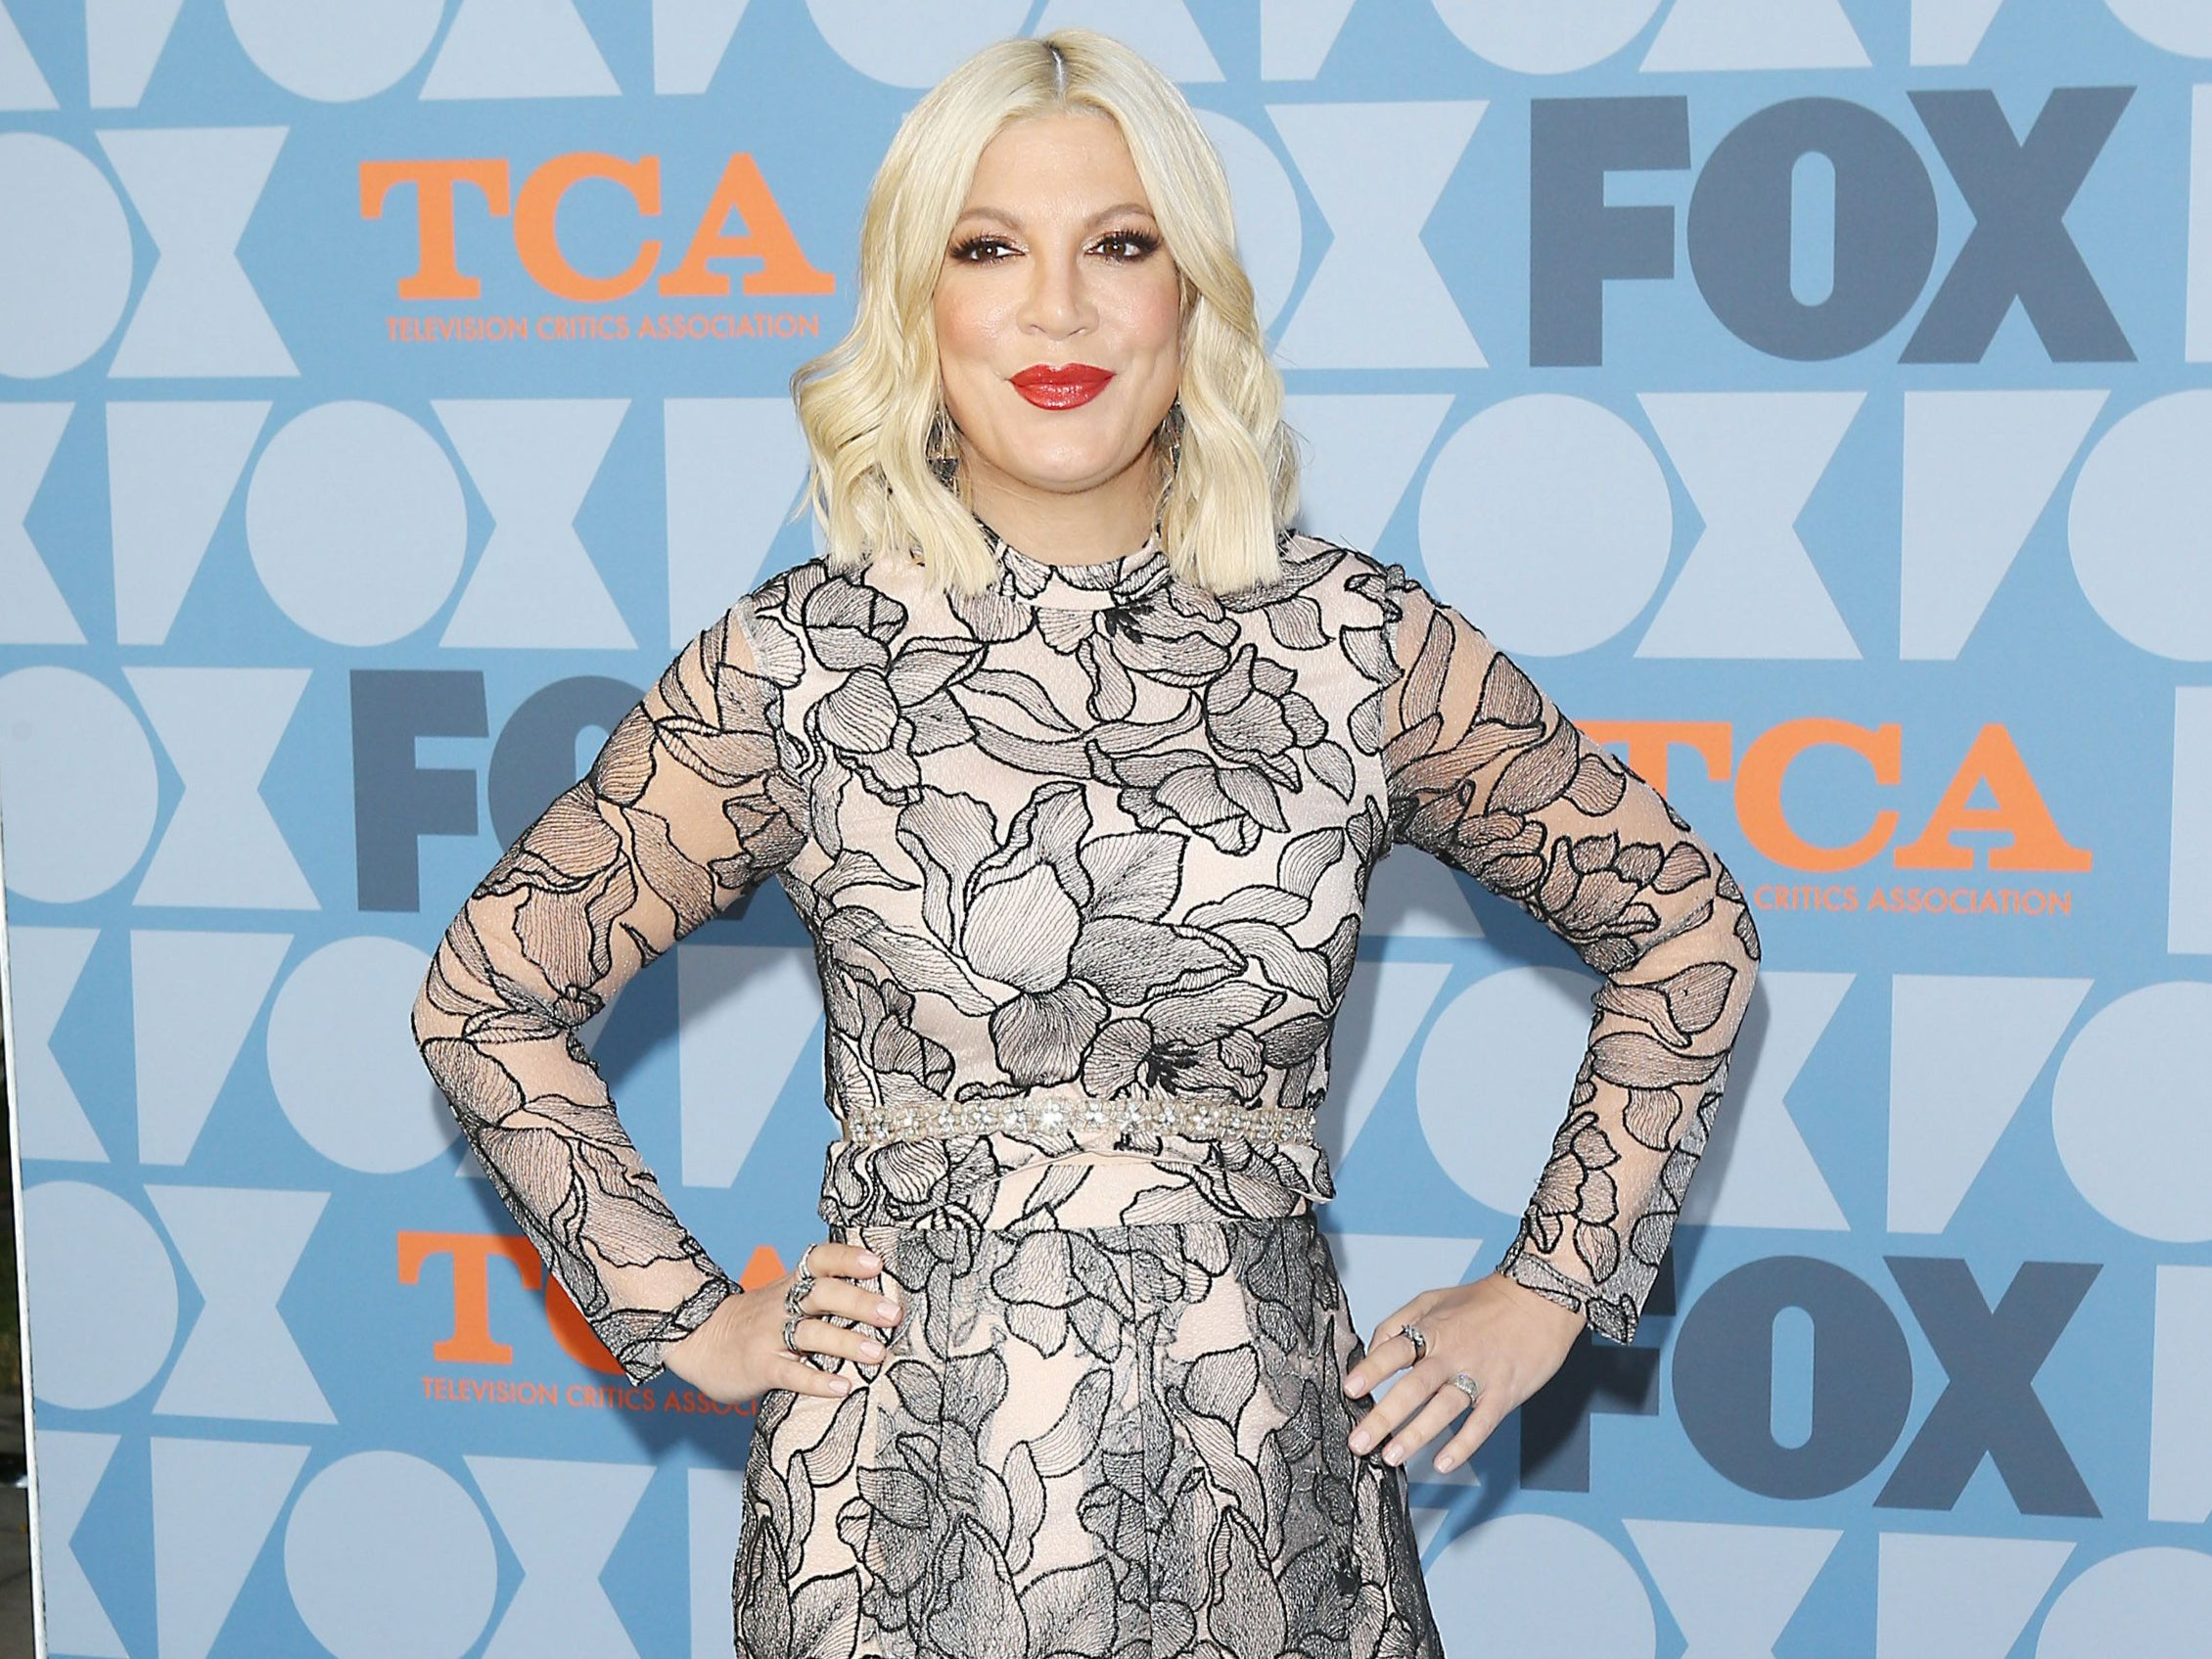 Tori Spelling opens up about being bullied over her appearance while on 90210: 'I used to hate my eyes'